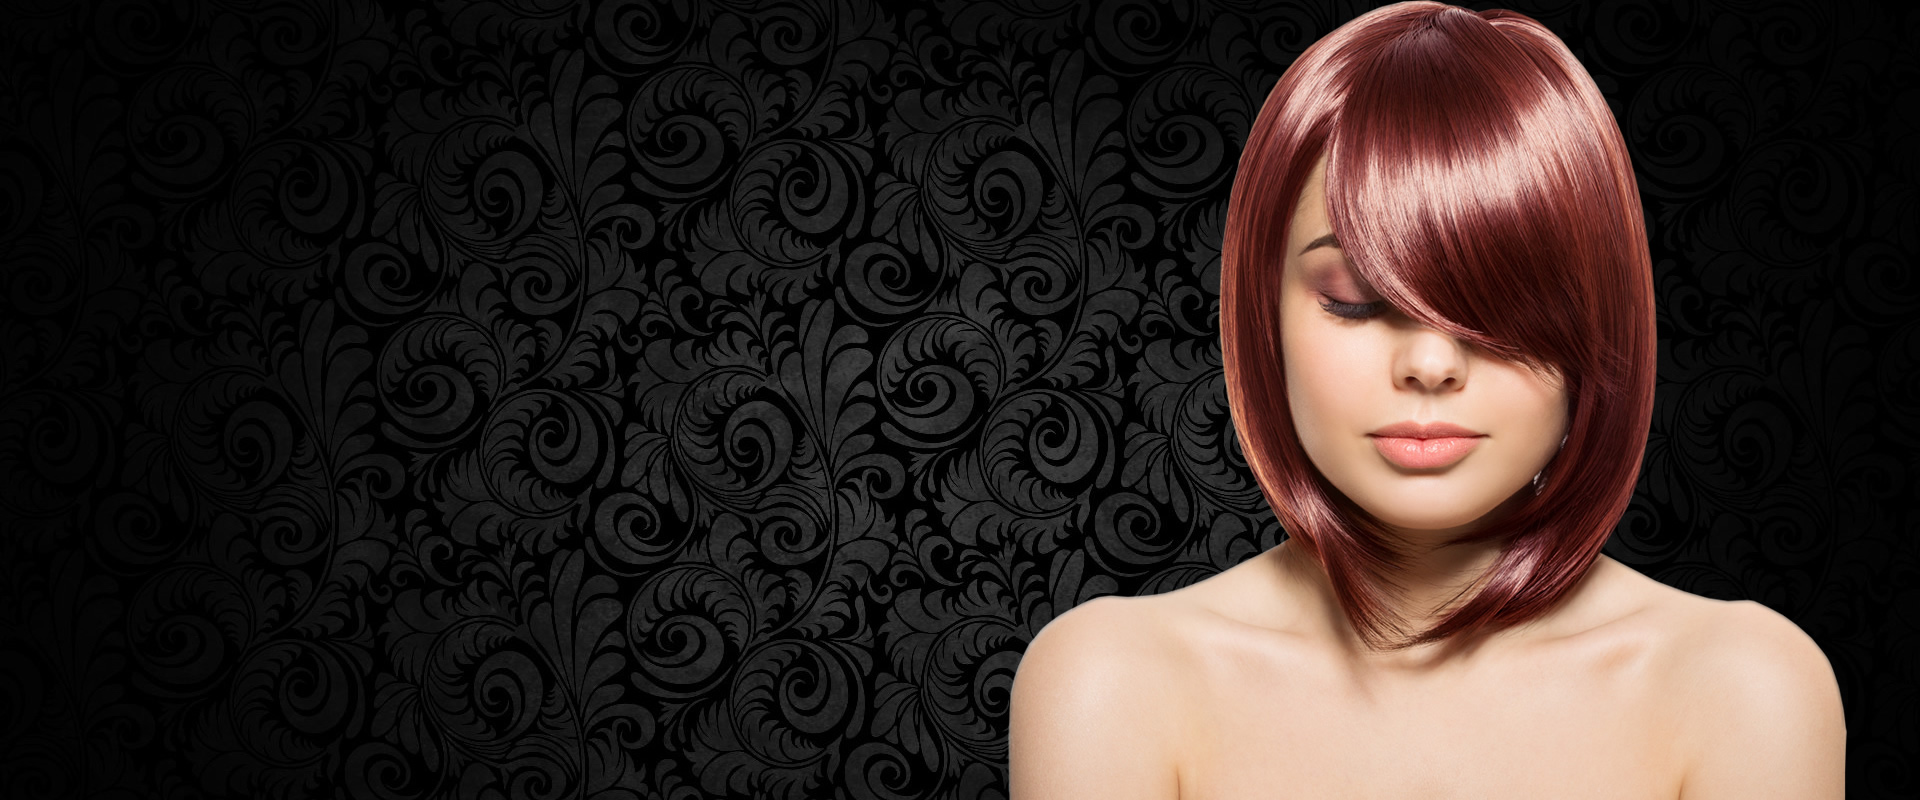 Salon Hair Hair Salon Marketing Listsbeauty And Hair Salons